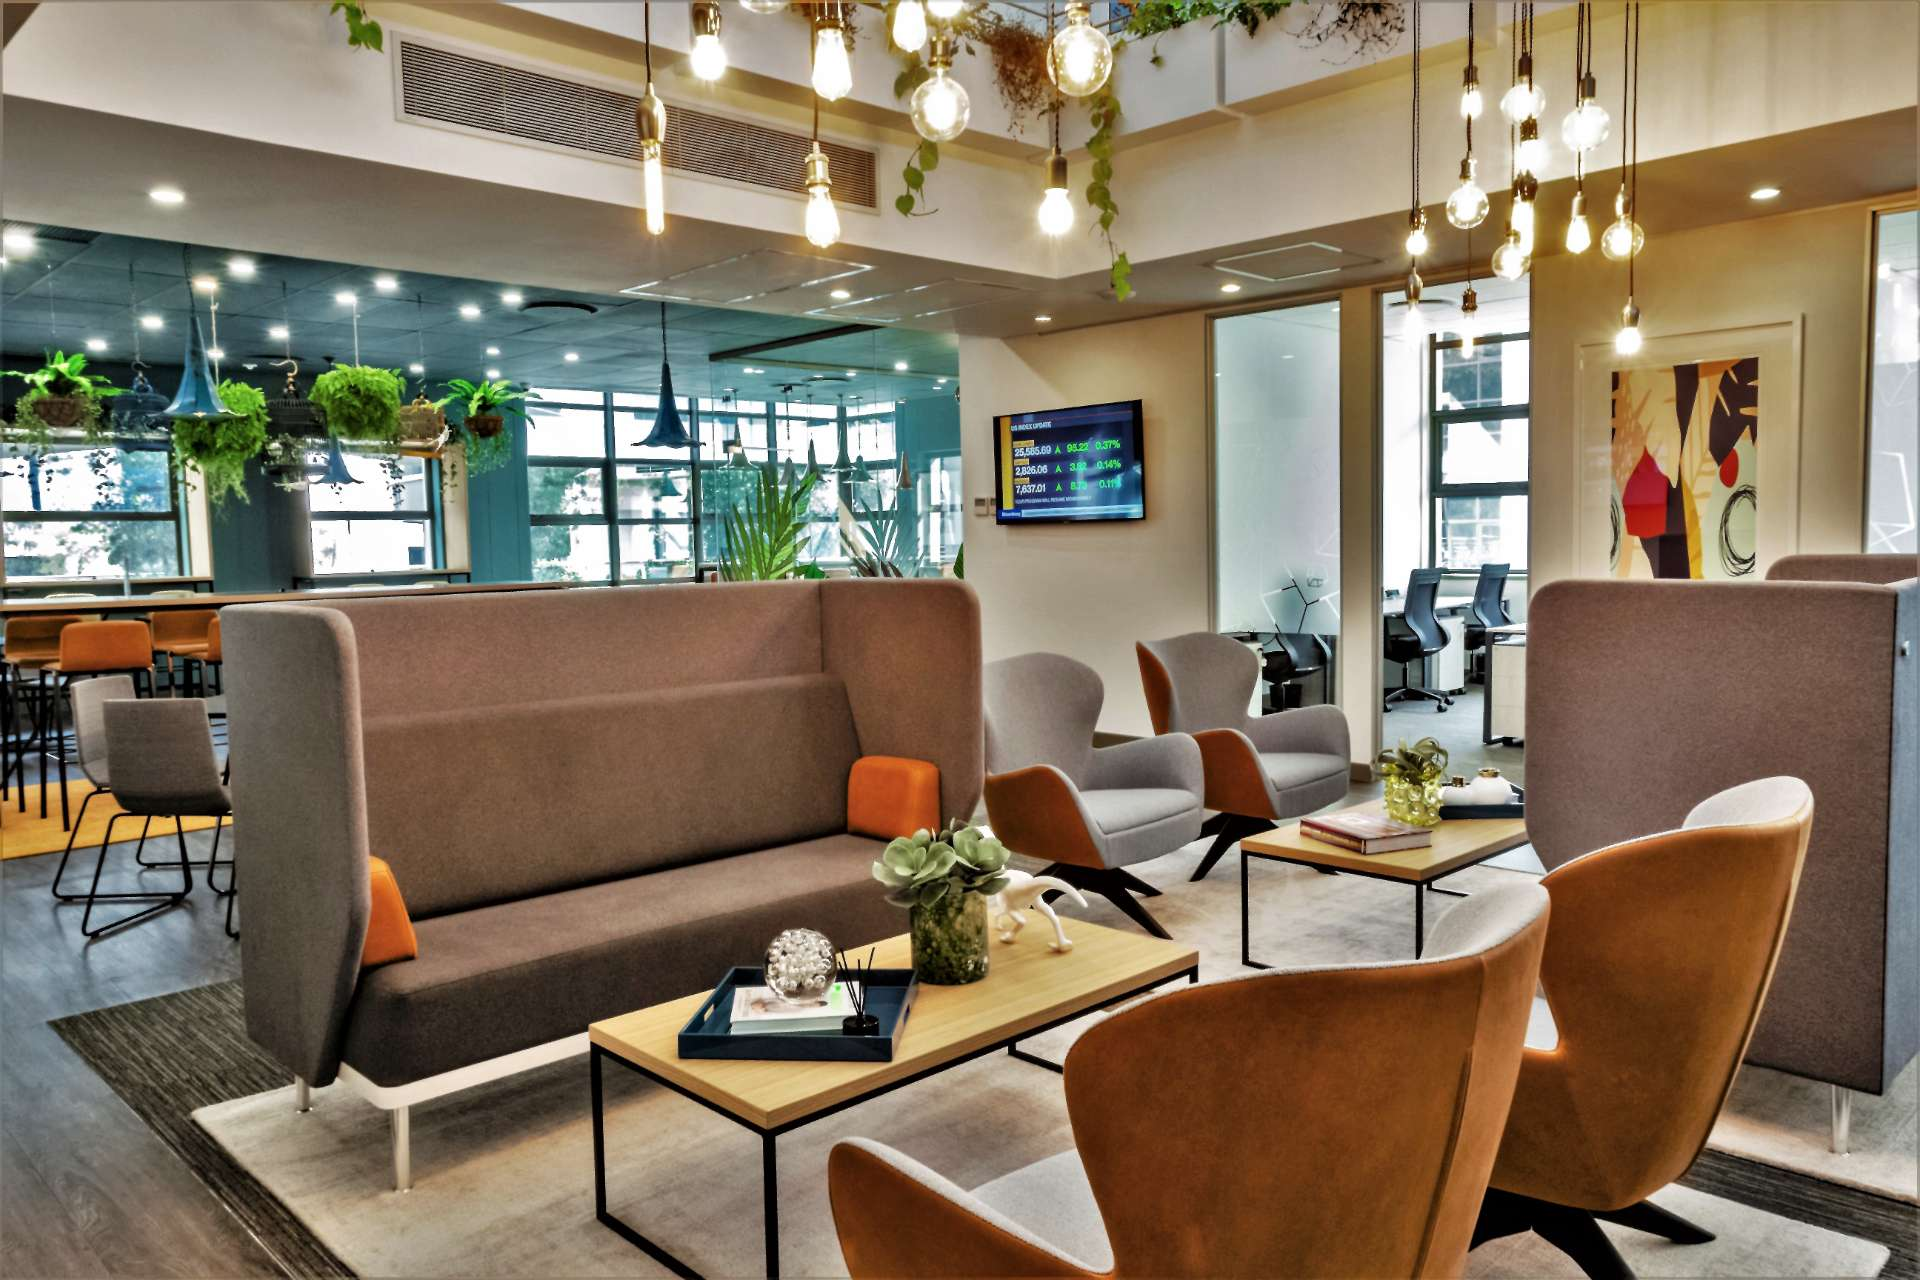 What corporate offices can learn from proworking spaces